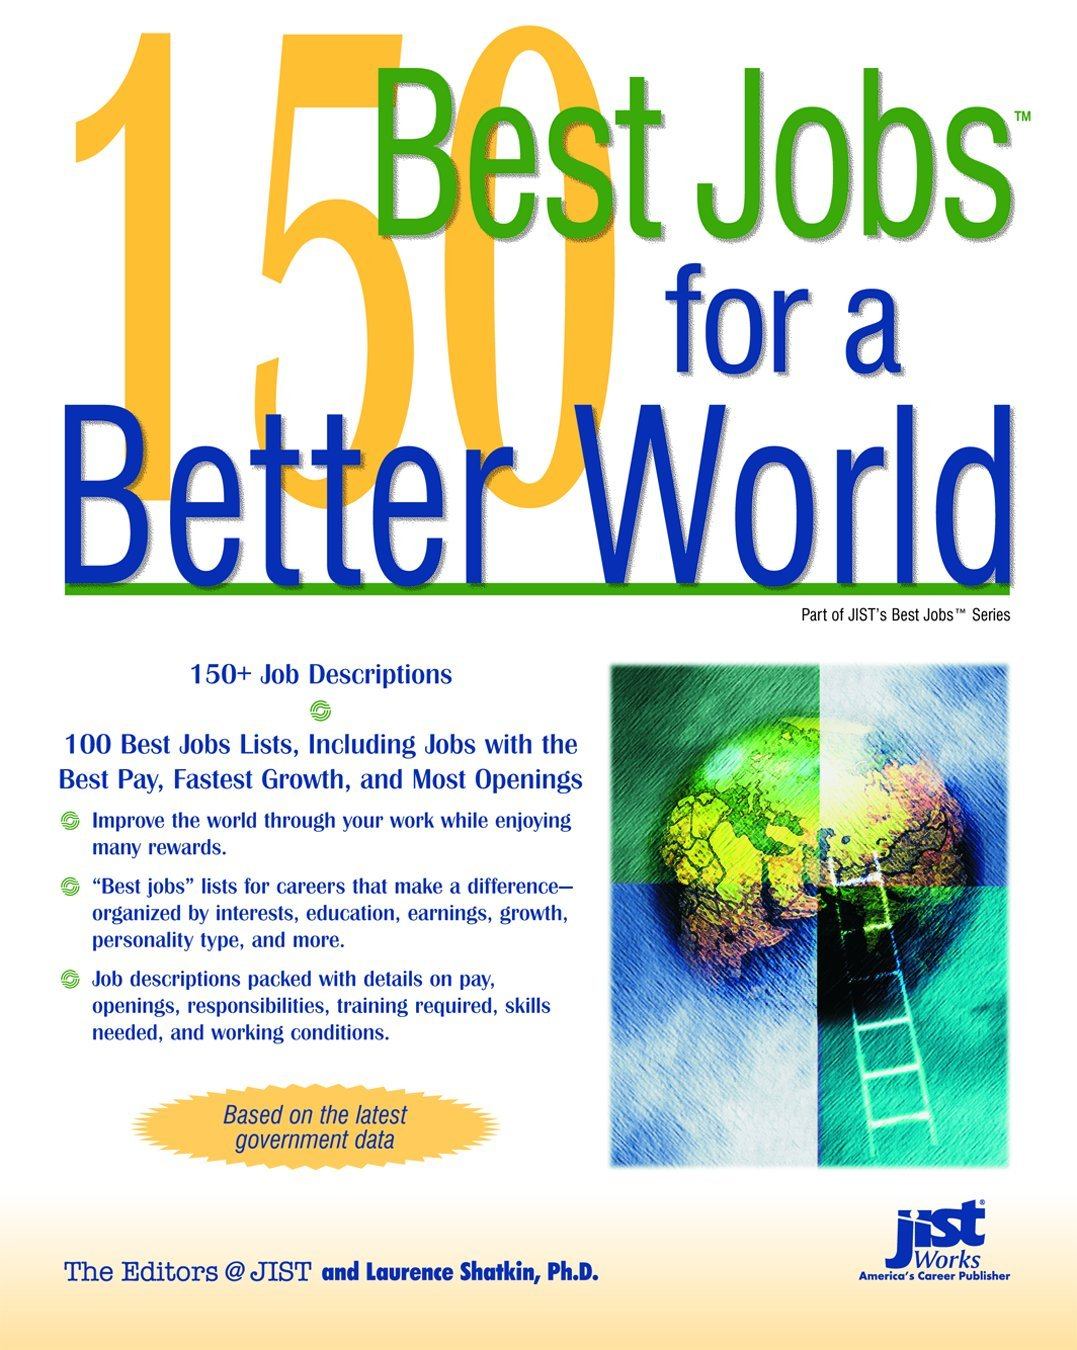 150 best jobs for a better world laurence shatkin 9781593574765 amazoncom books - Jobs That Make A Difference In The World